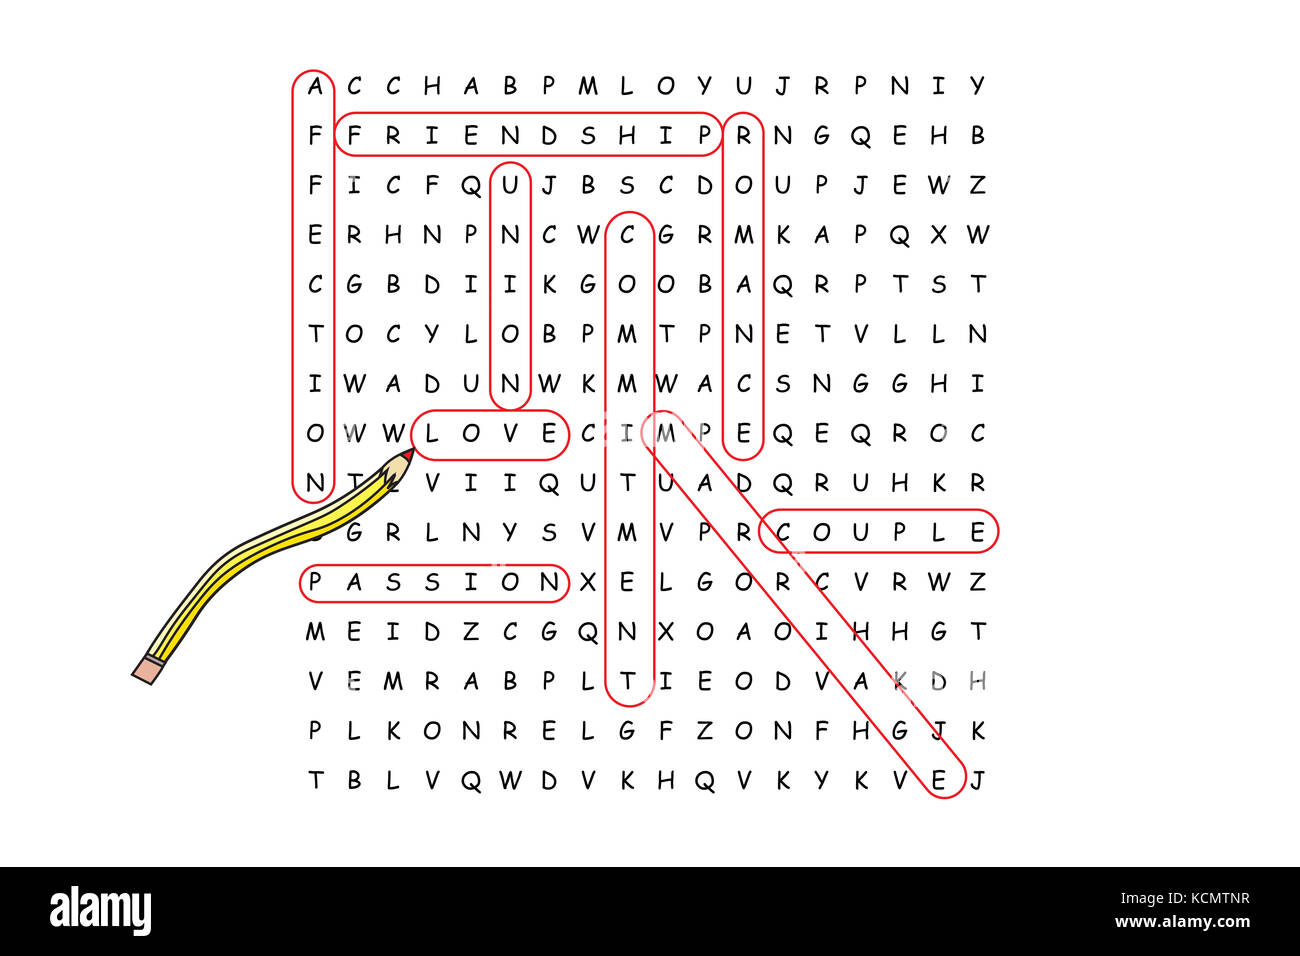 Looking For Love Word Search Puzzle Withociated Words Circled In Red Pencil